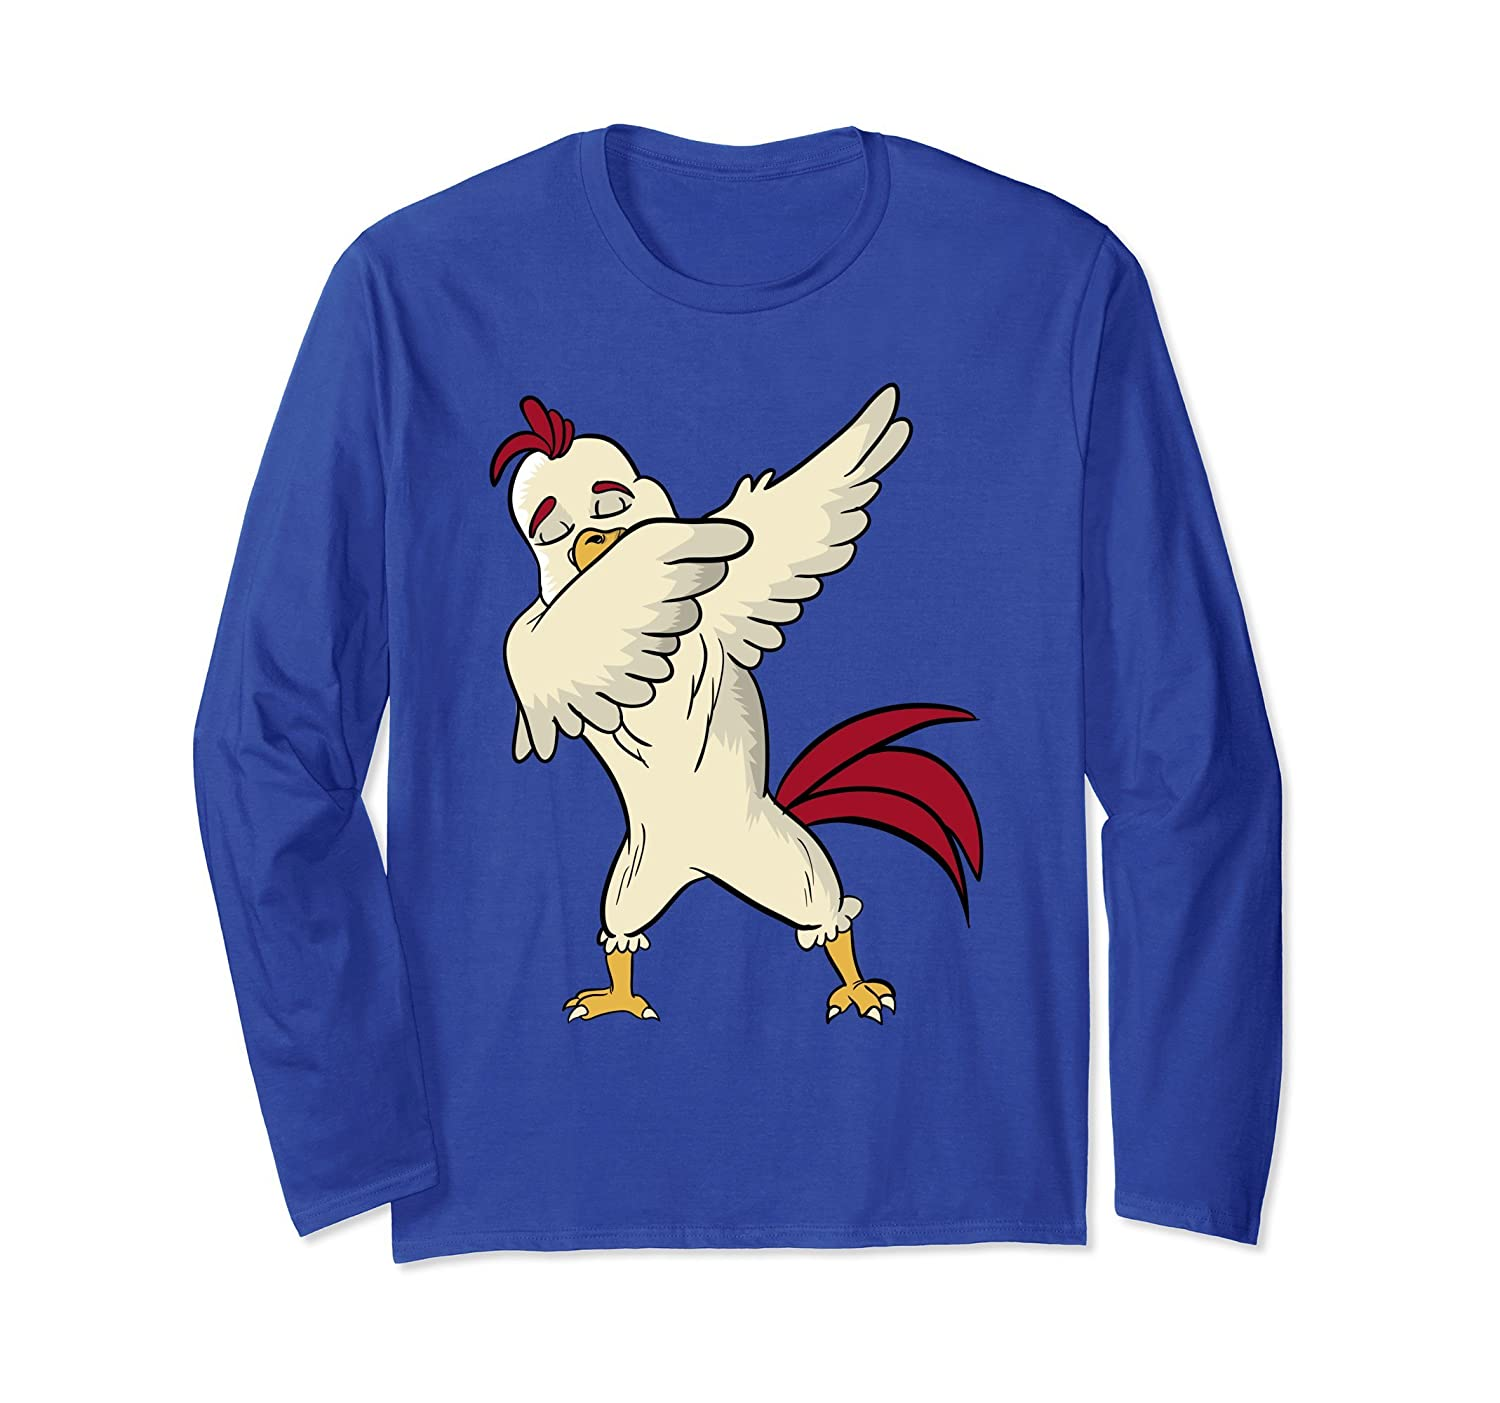 Funny Dabbing Chicken Lover T-Shirt Dance Party Long Sleeve-AZP